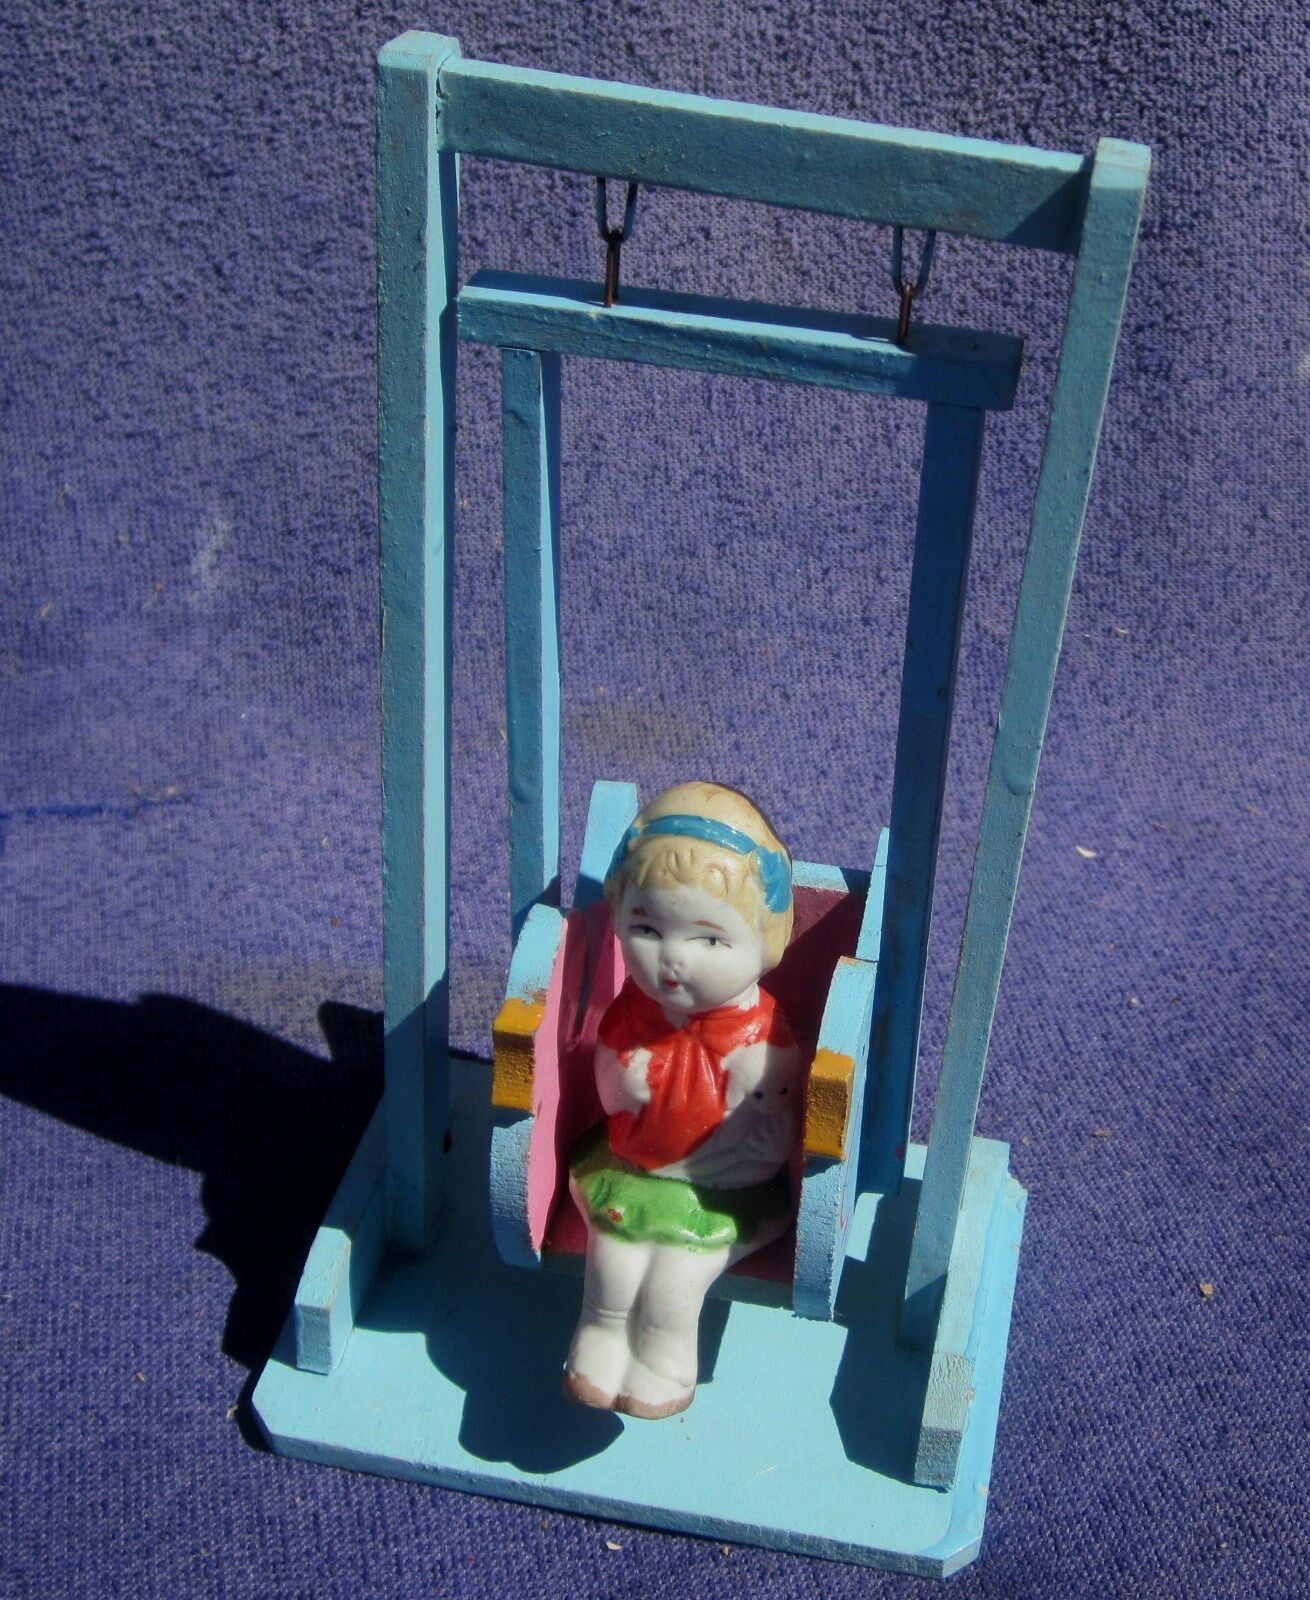 Rare 1920 30s Seated Porcelain Doll on blu Wood Standing Swing NOS from Store